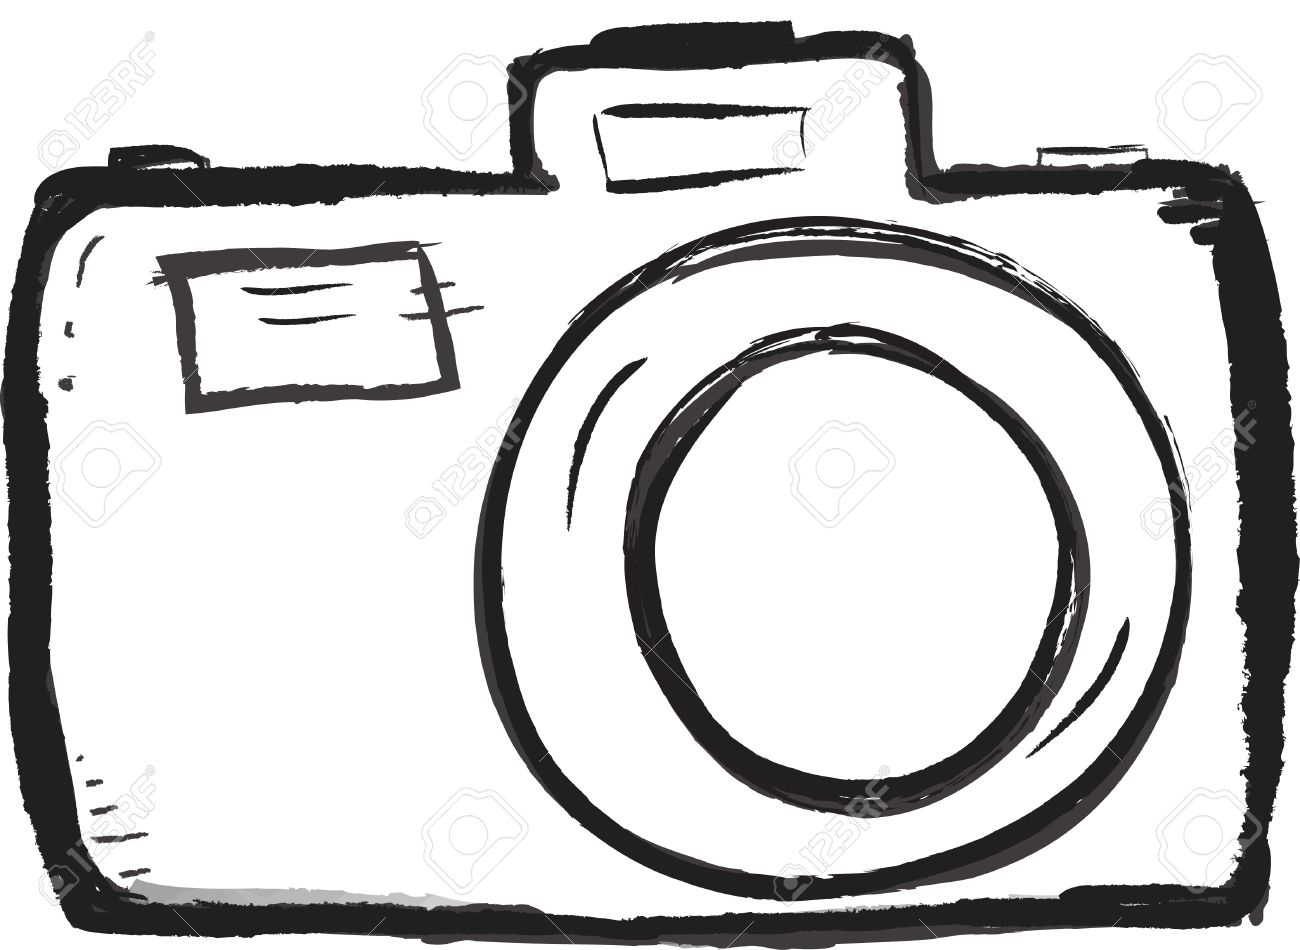 Scribble Hand Drawn Camera Icon Vector With Heart Stock Photo ...